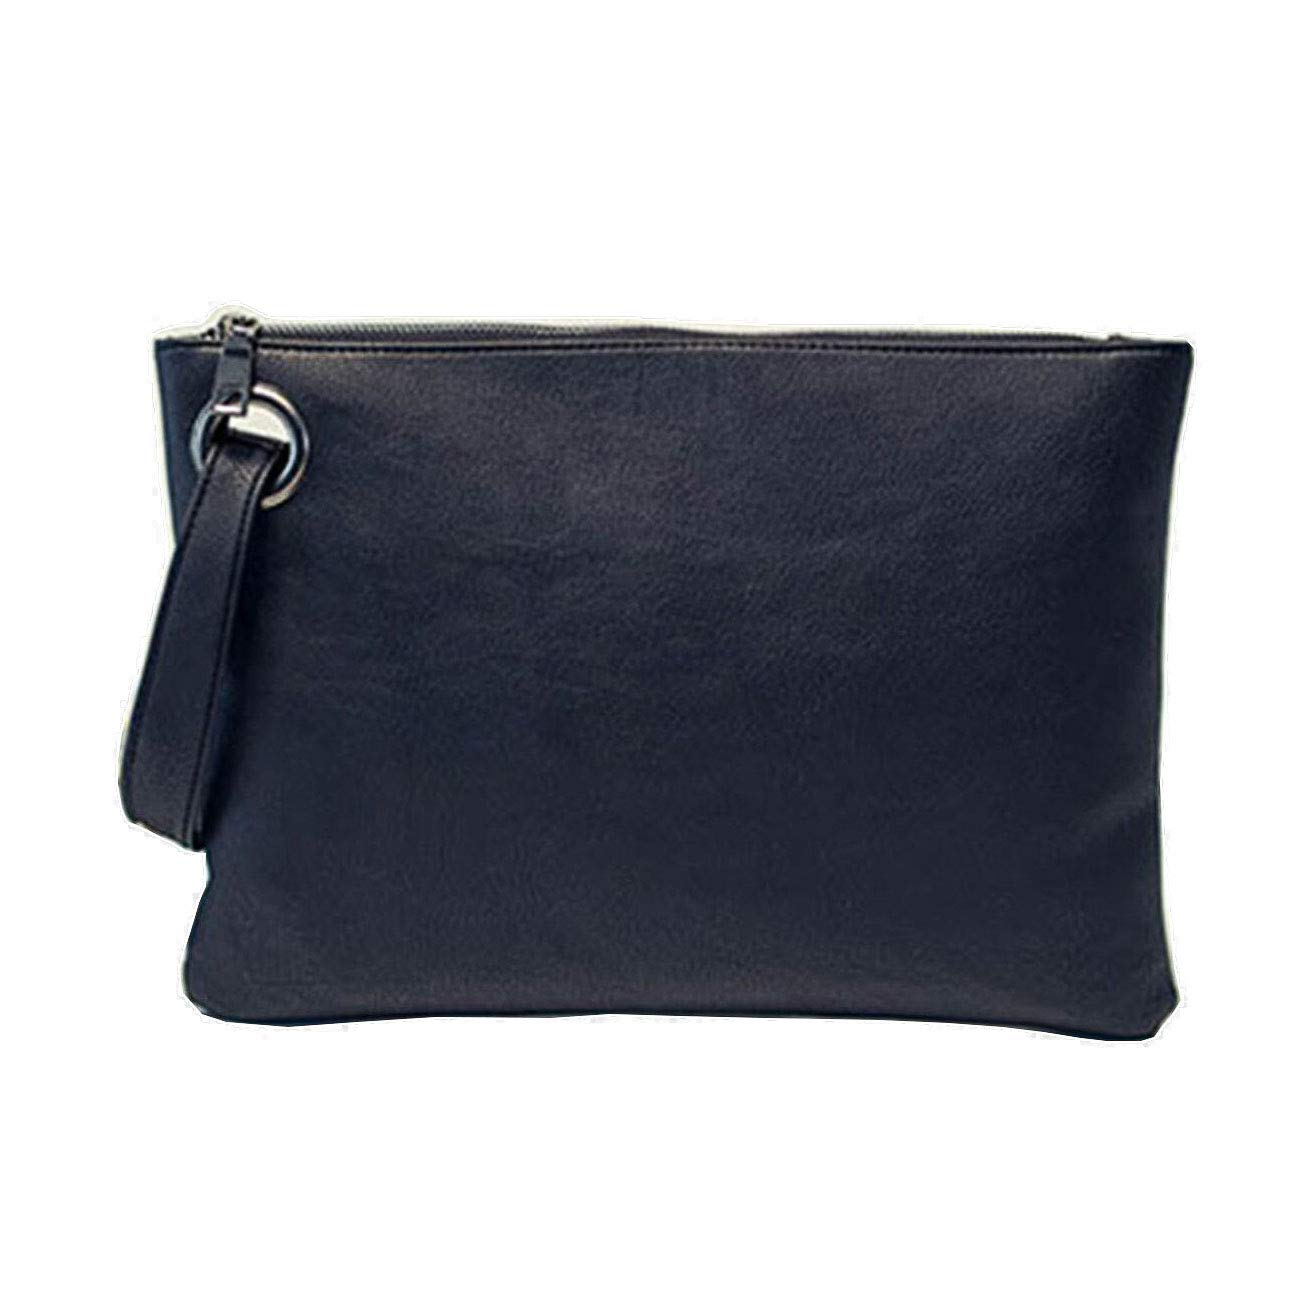 famous brand complete in specifications cheap sale Aladin Oversized Clutch Bag Purse, Womens Large leather Evening Wristlet  Handbag